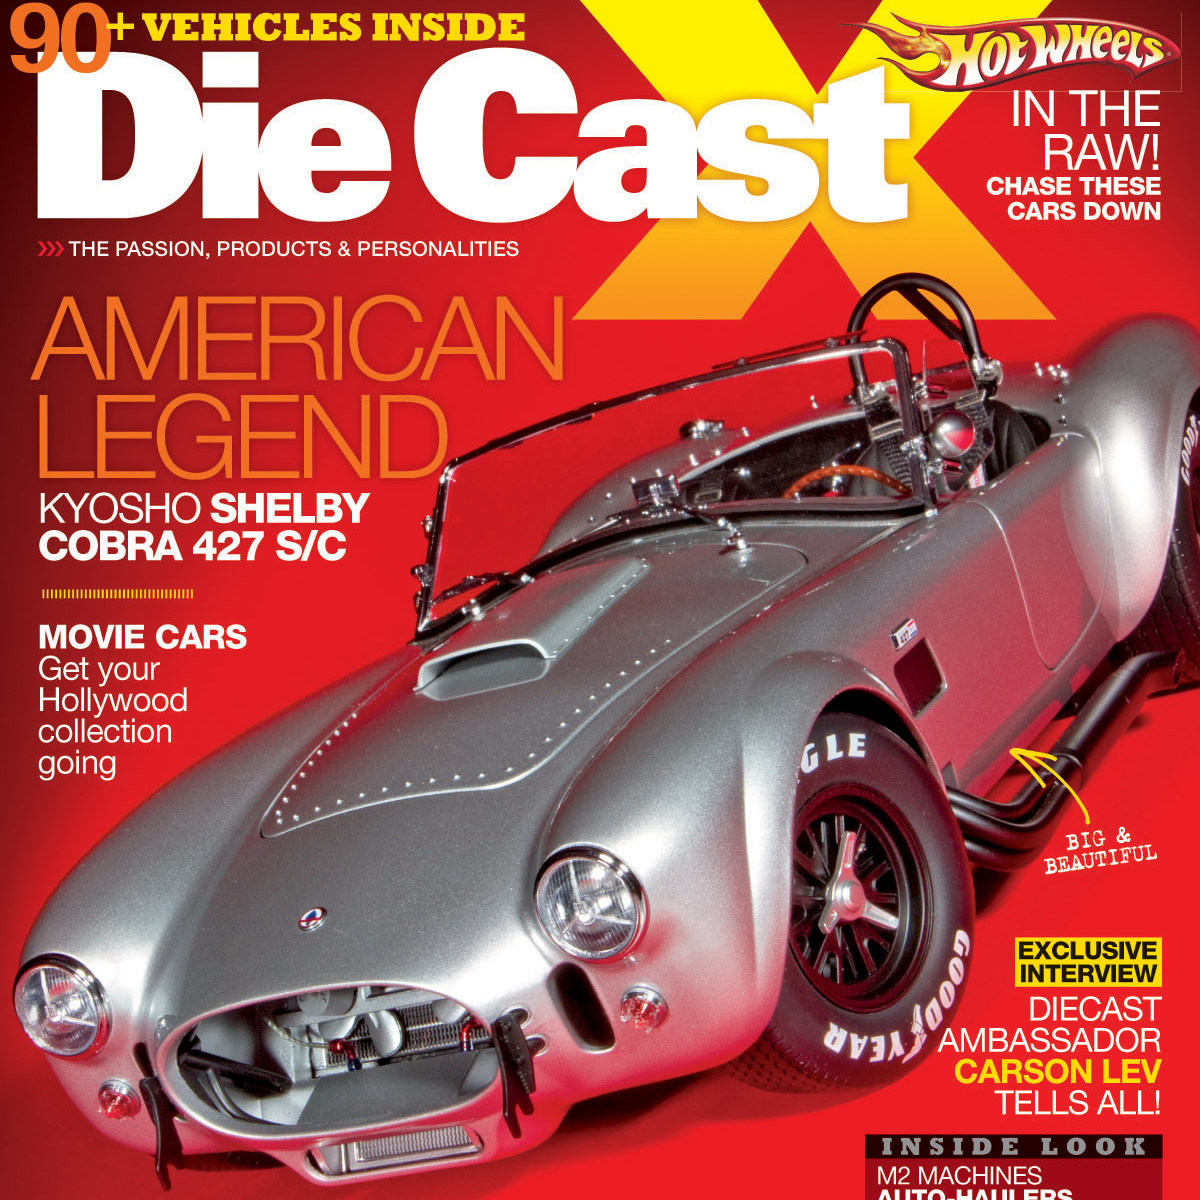 Die Cast X Magazine Winter 2012 Issue on sale now!  Check out some photos from the issue…